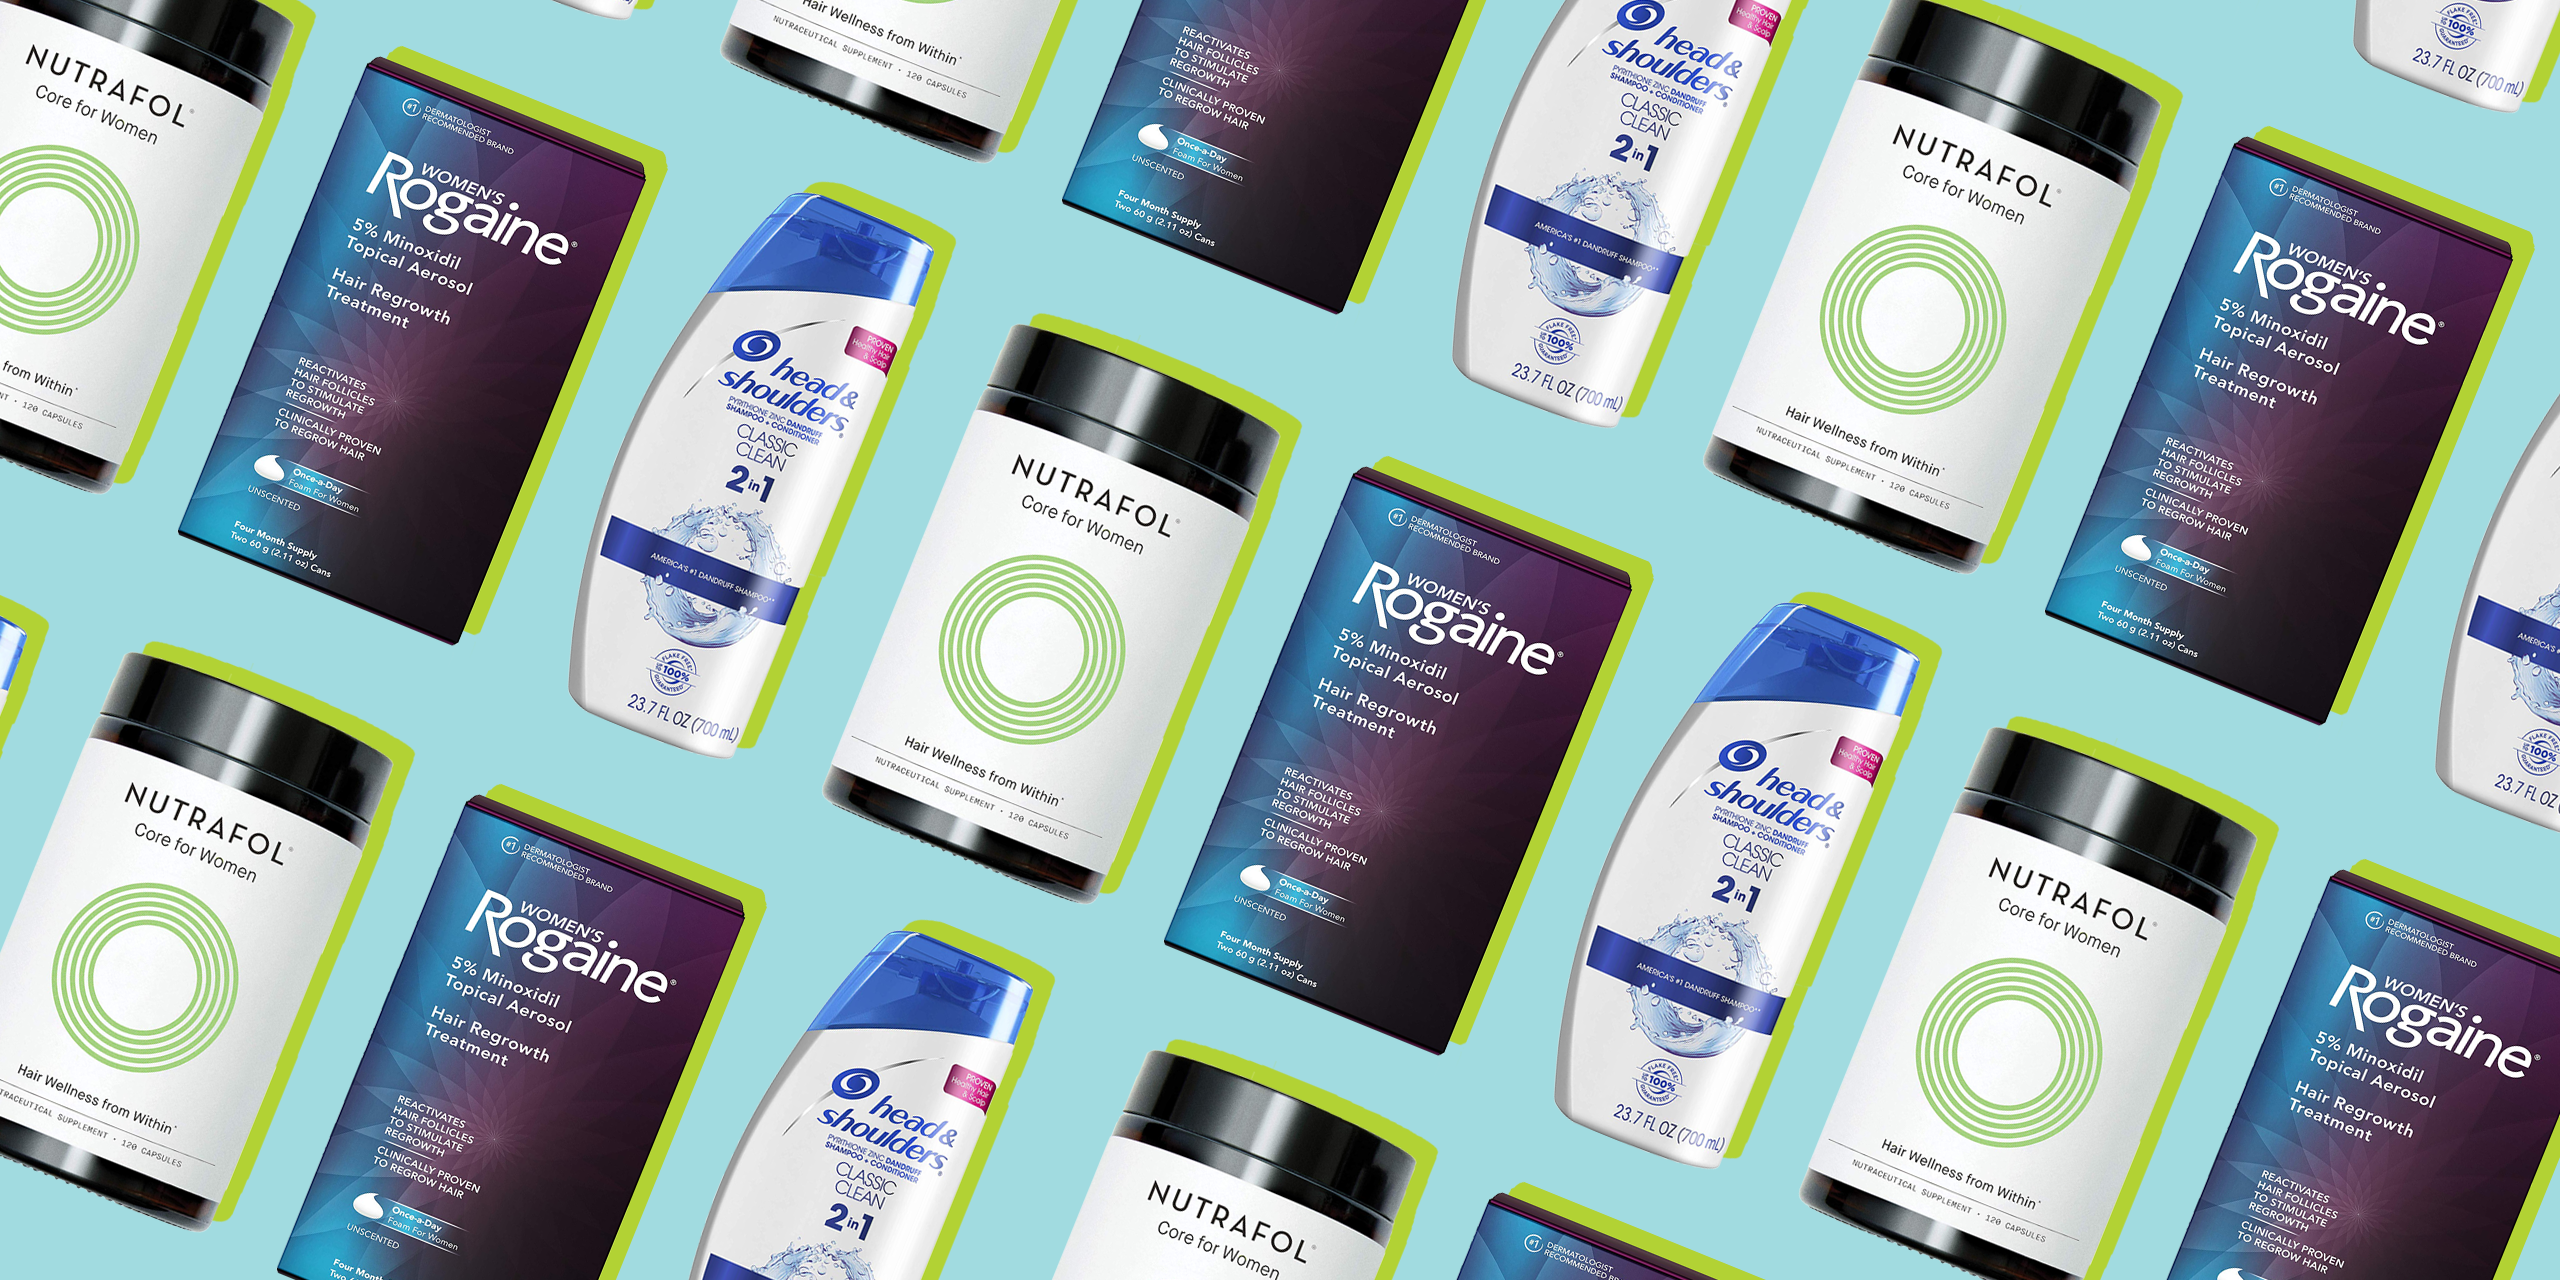 The Best Products for Thinning Hair to Buy in 2019, According to Dermatologists